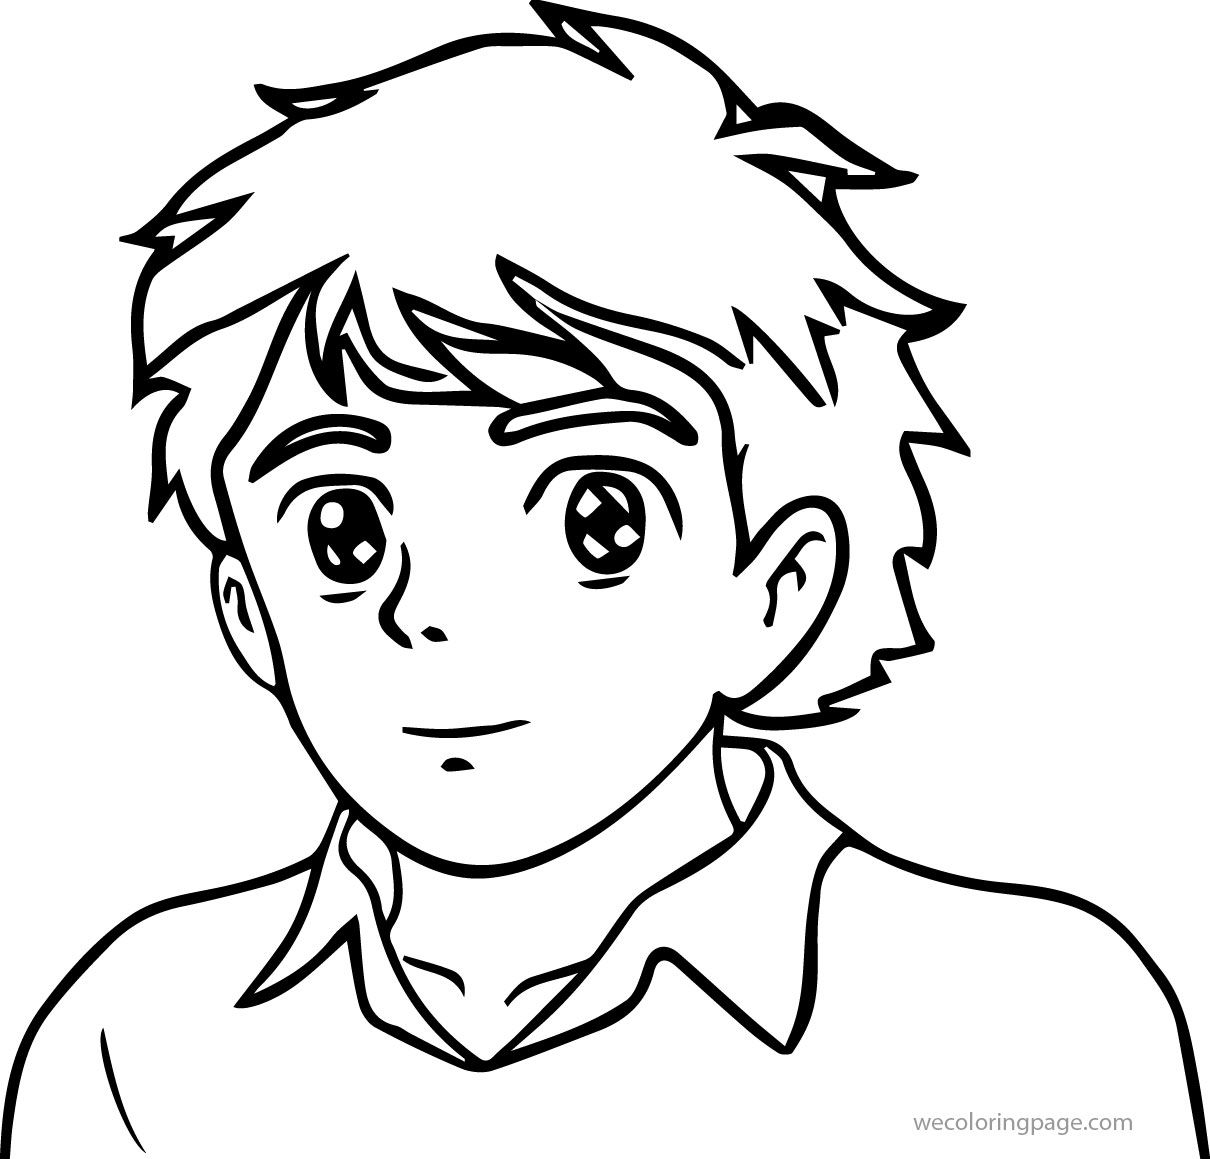 Cute Cartoon Person Coloring Page Wecoloringpage Com Cartoon Coloring Pages Coloring Pages Disney Coloring Pages